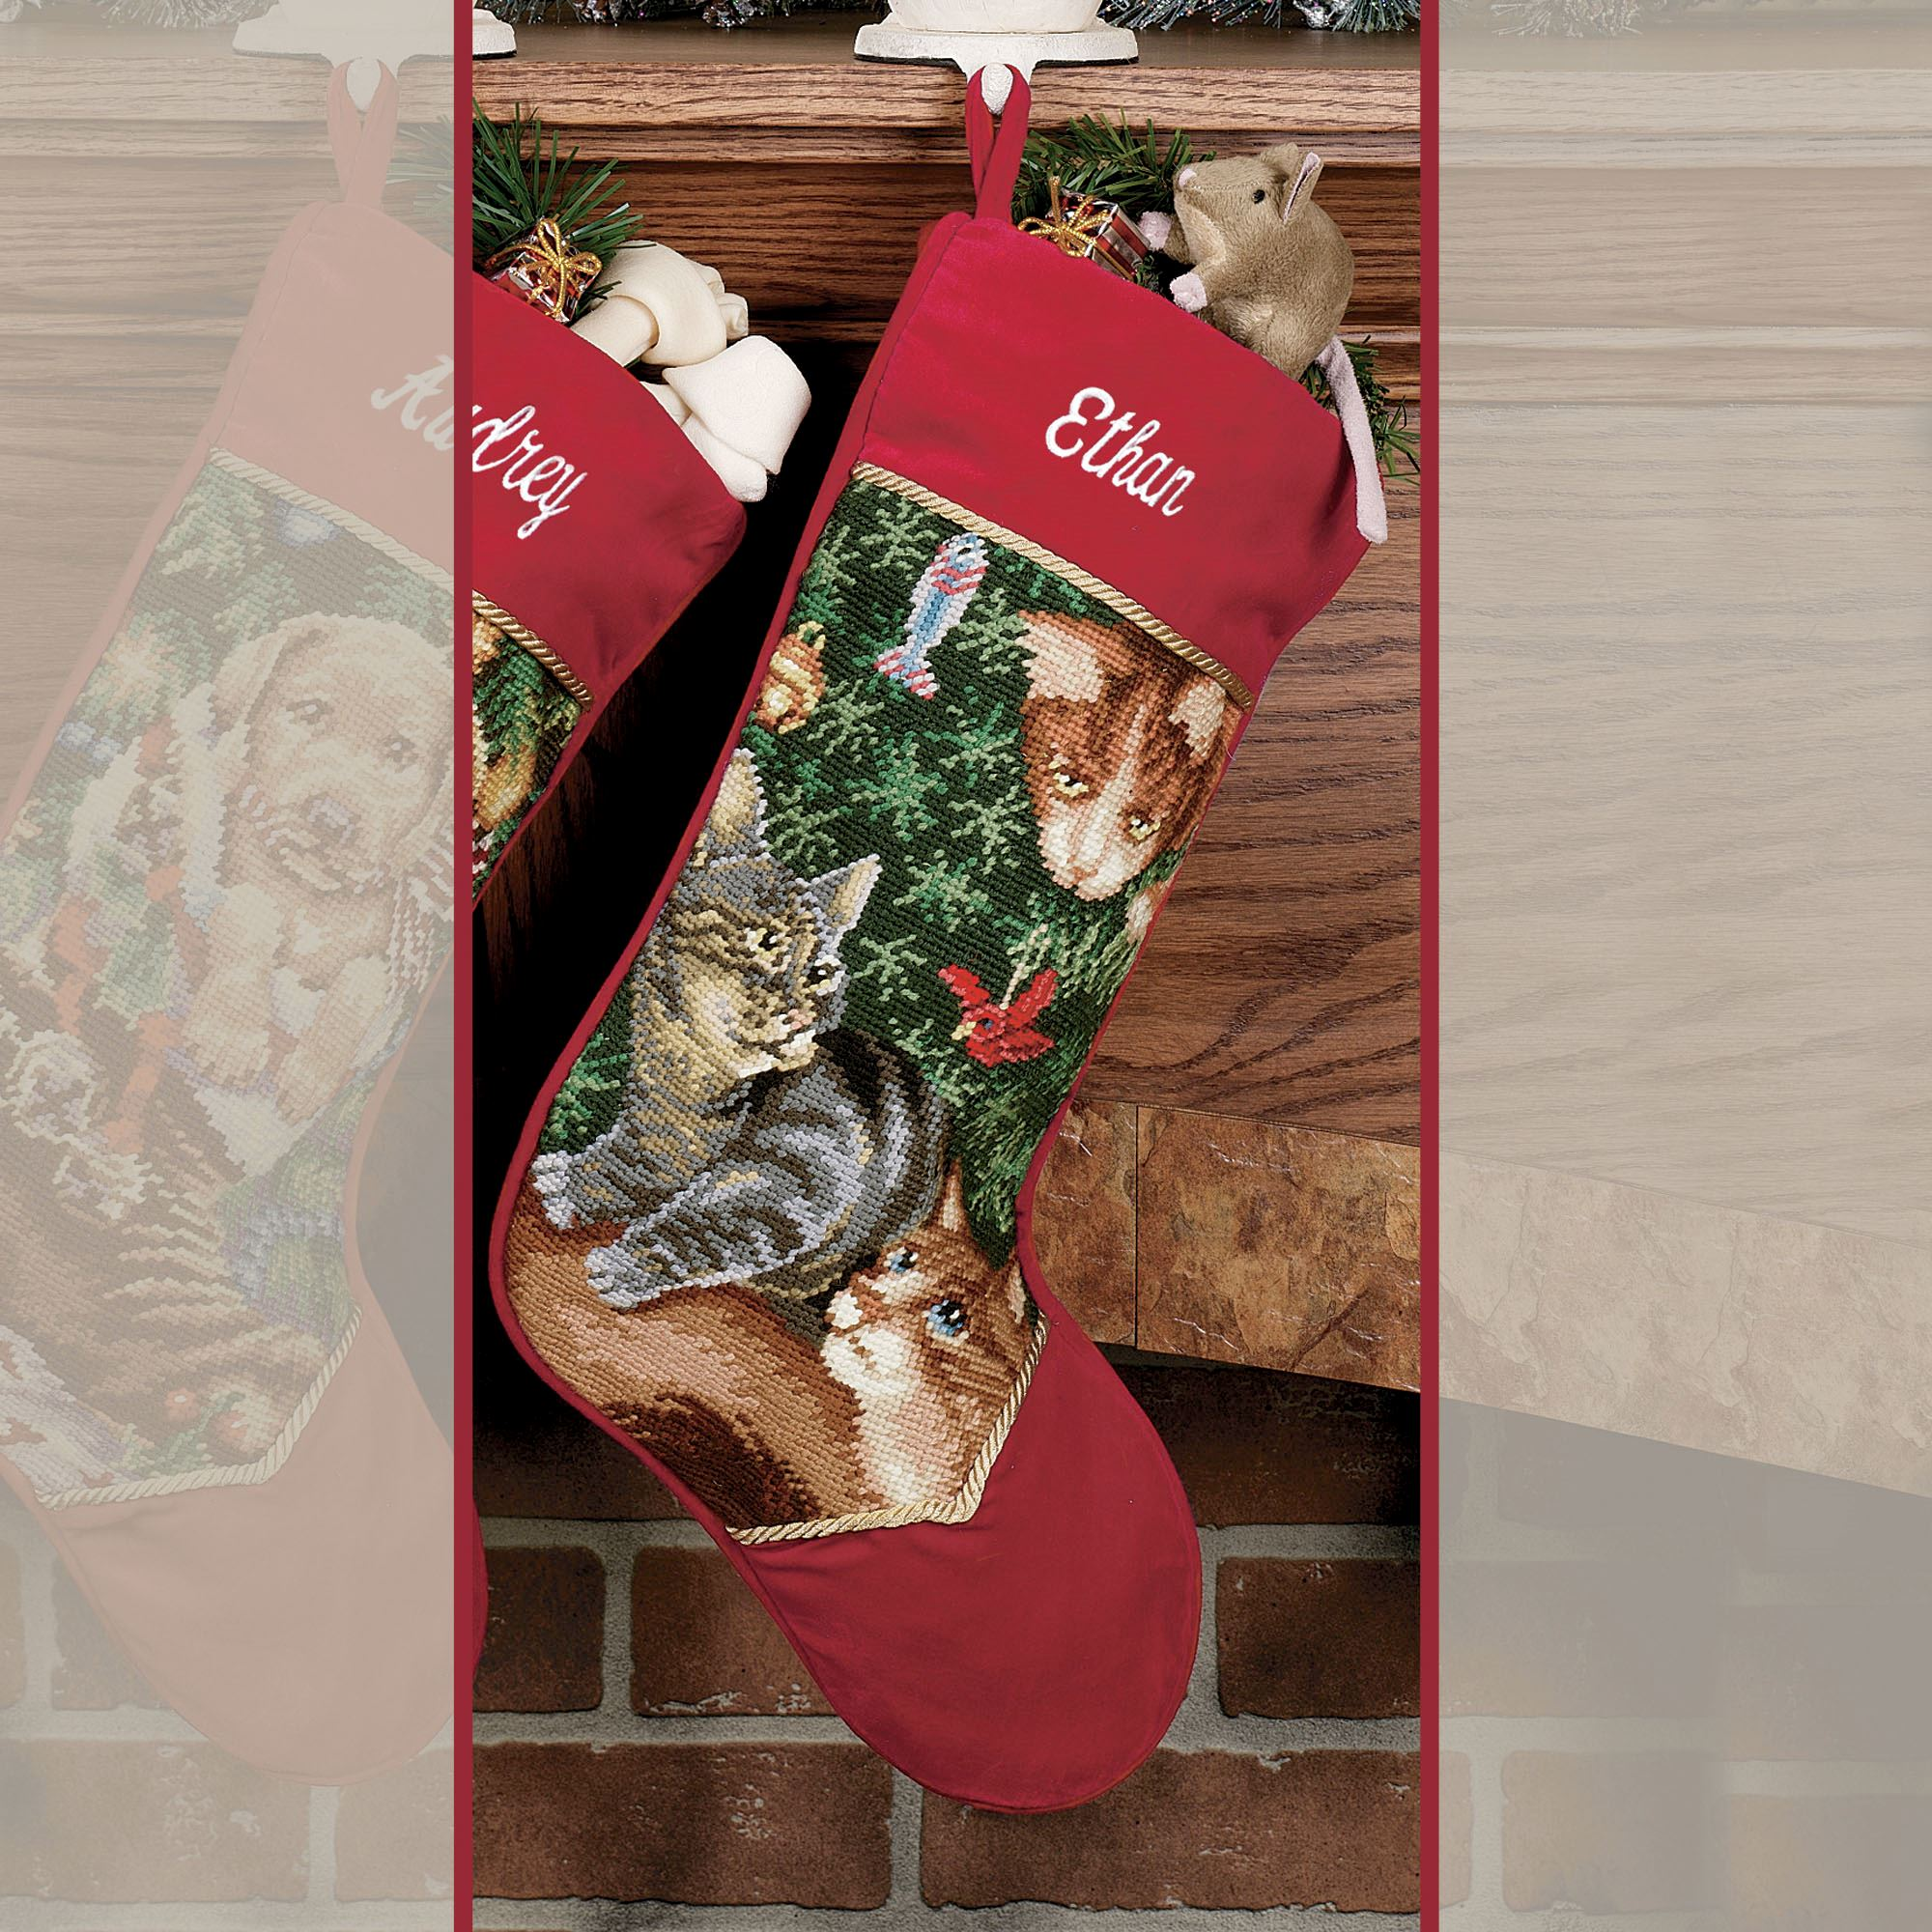 furry elves needlepoint stocking touch to zoom free personalization - Personalized Needlepoint Christmas Stockings